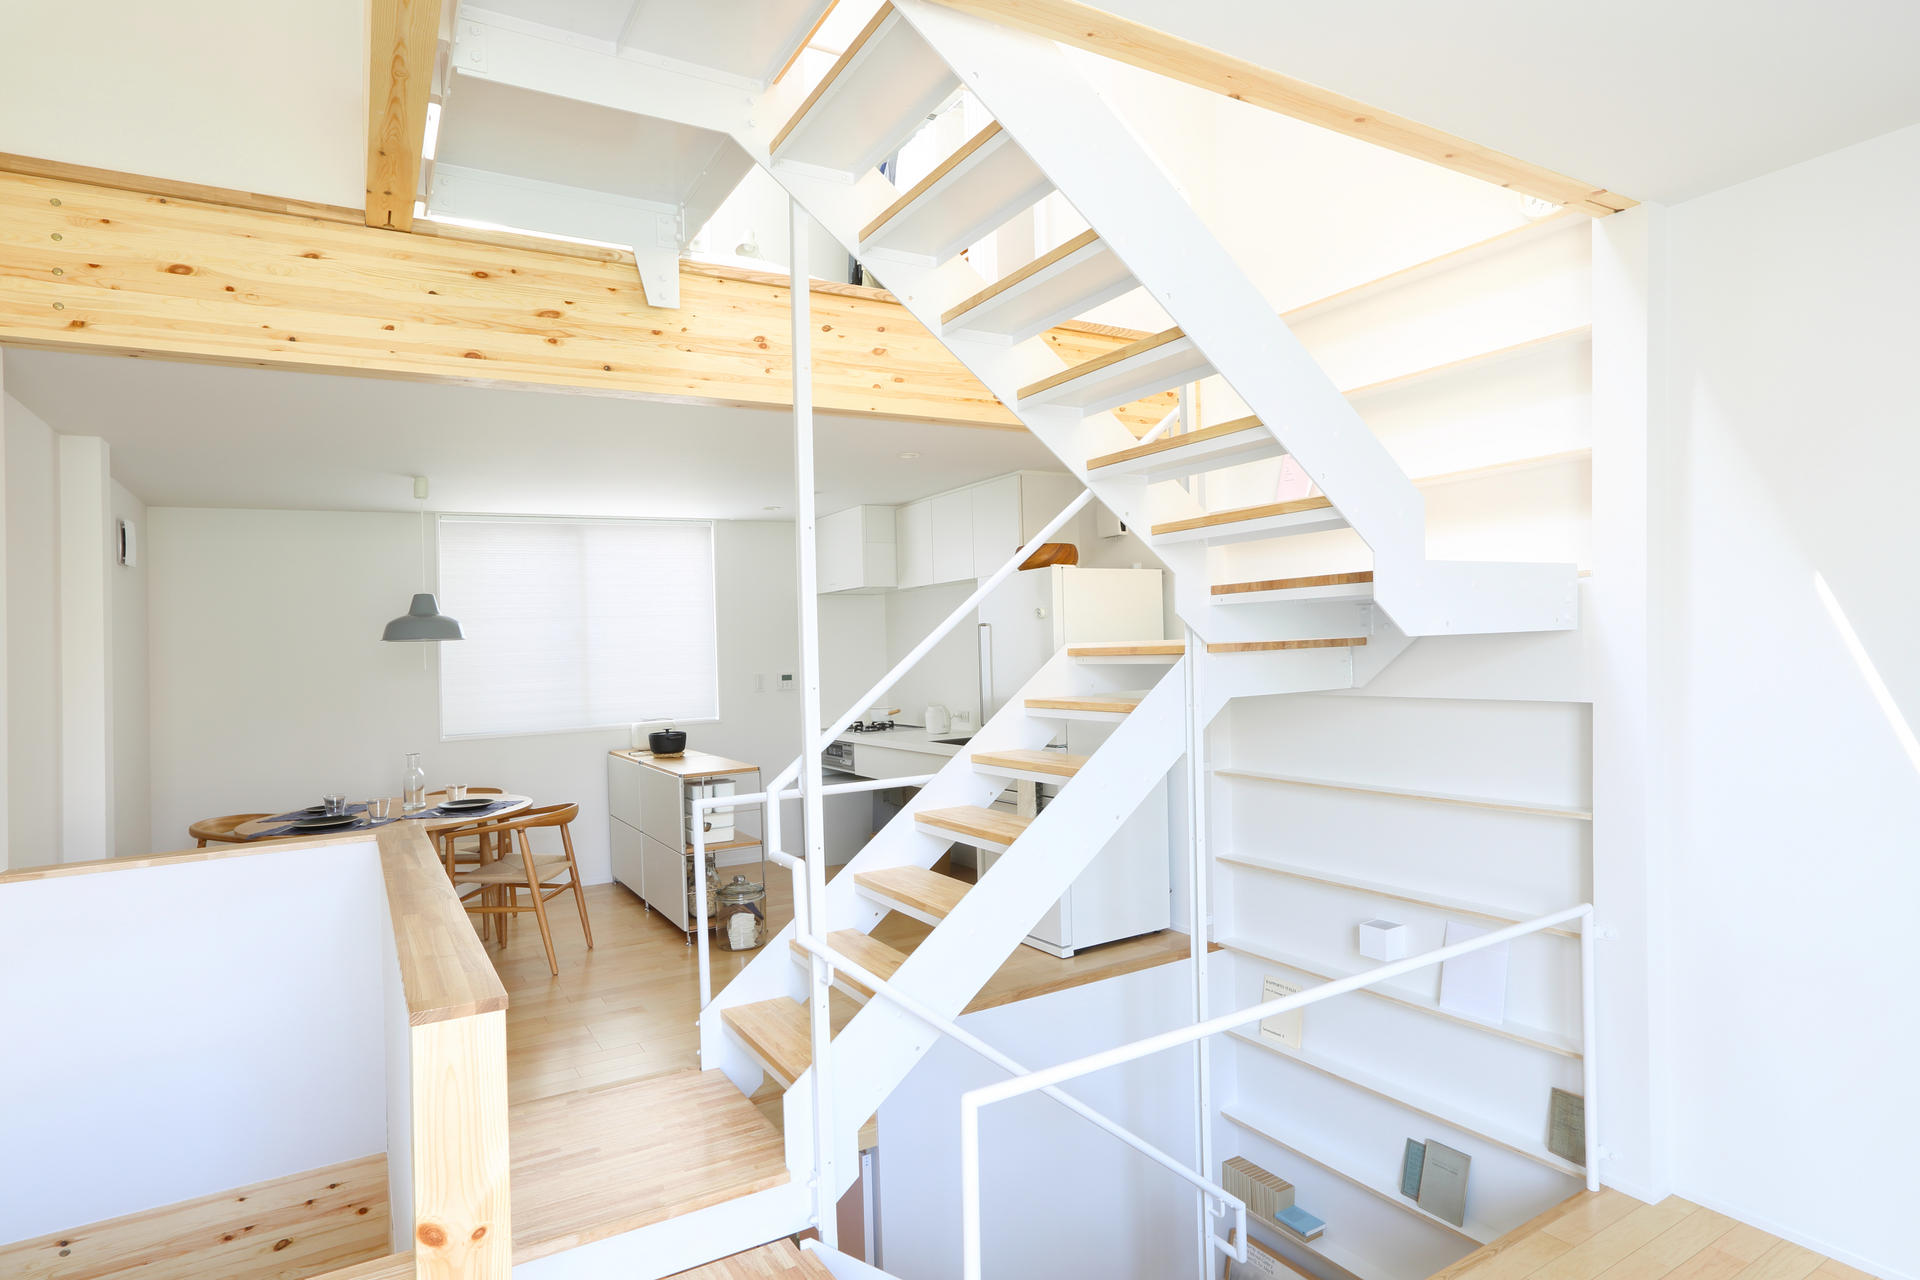 Muji Makes Room For Style In Award winning Vertical House